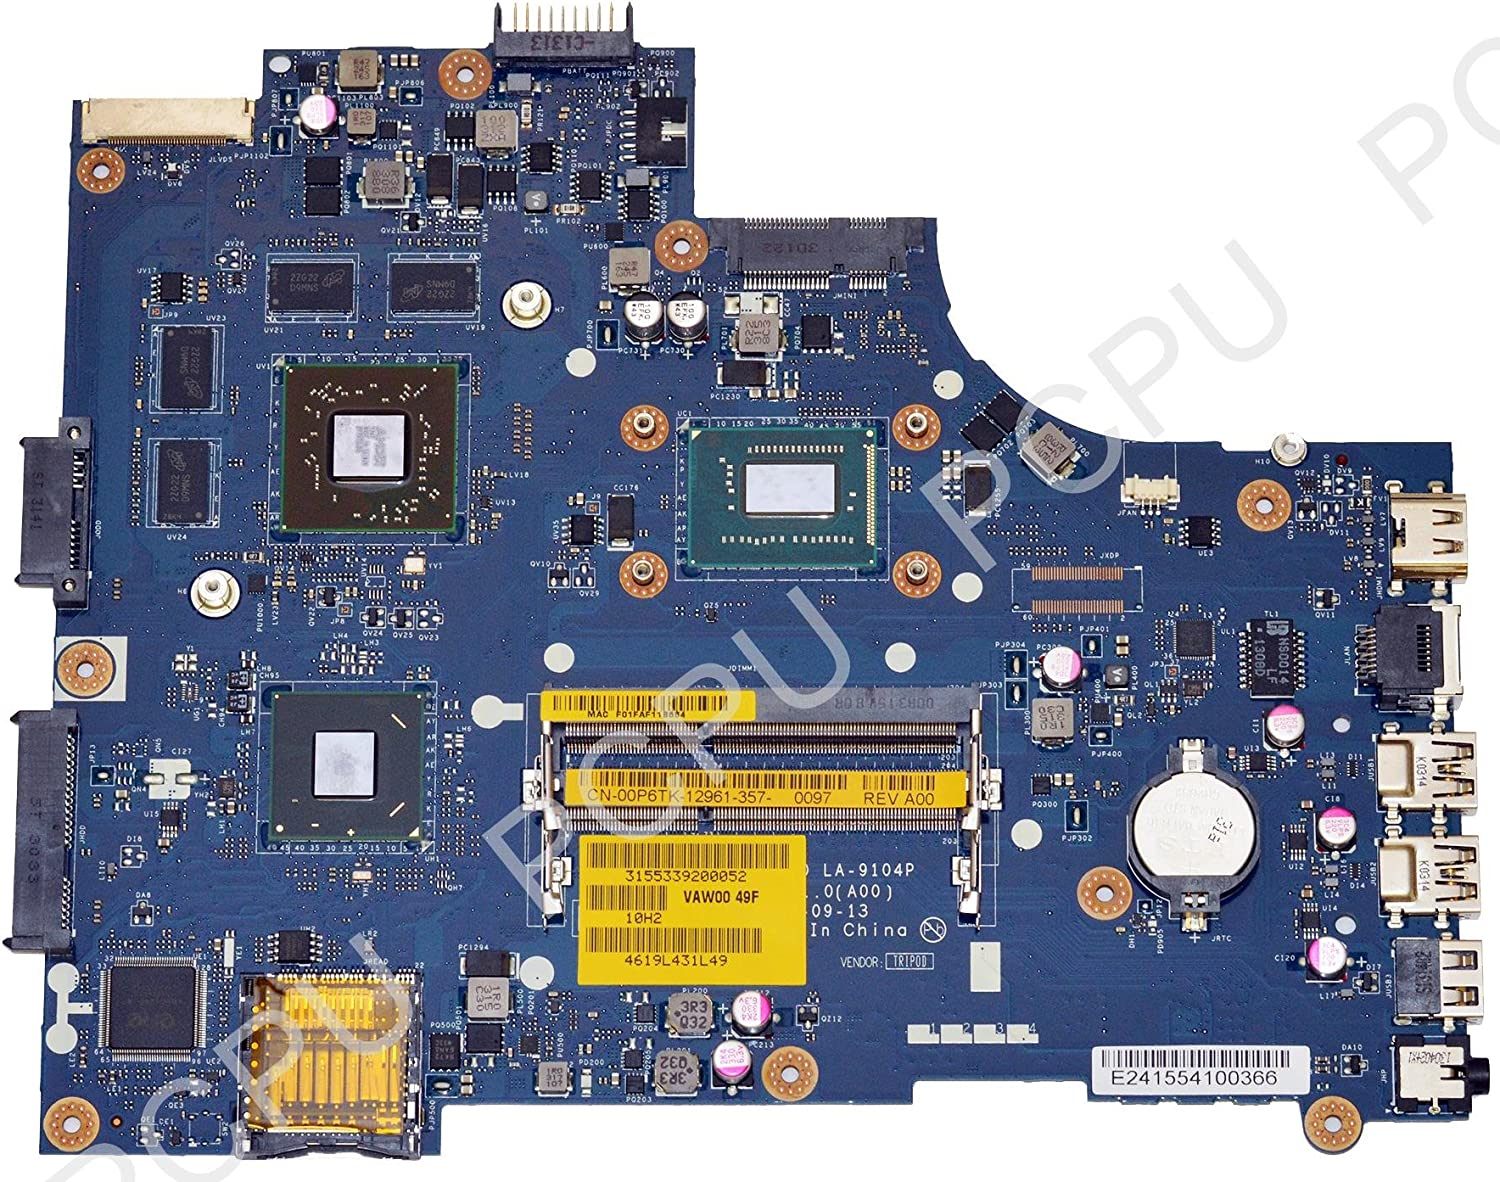 0P6TK Dell Inspiron 15 3521 Laptop Motherboard w/Intel i3-3227u 1.9Ghz CPU, VAW00